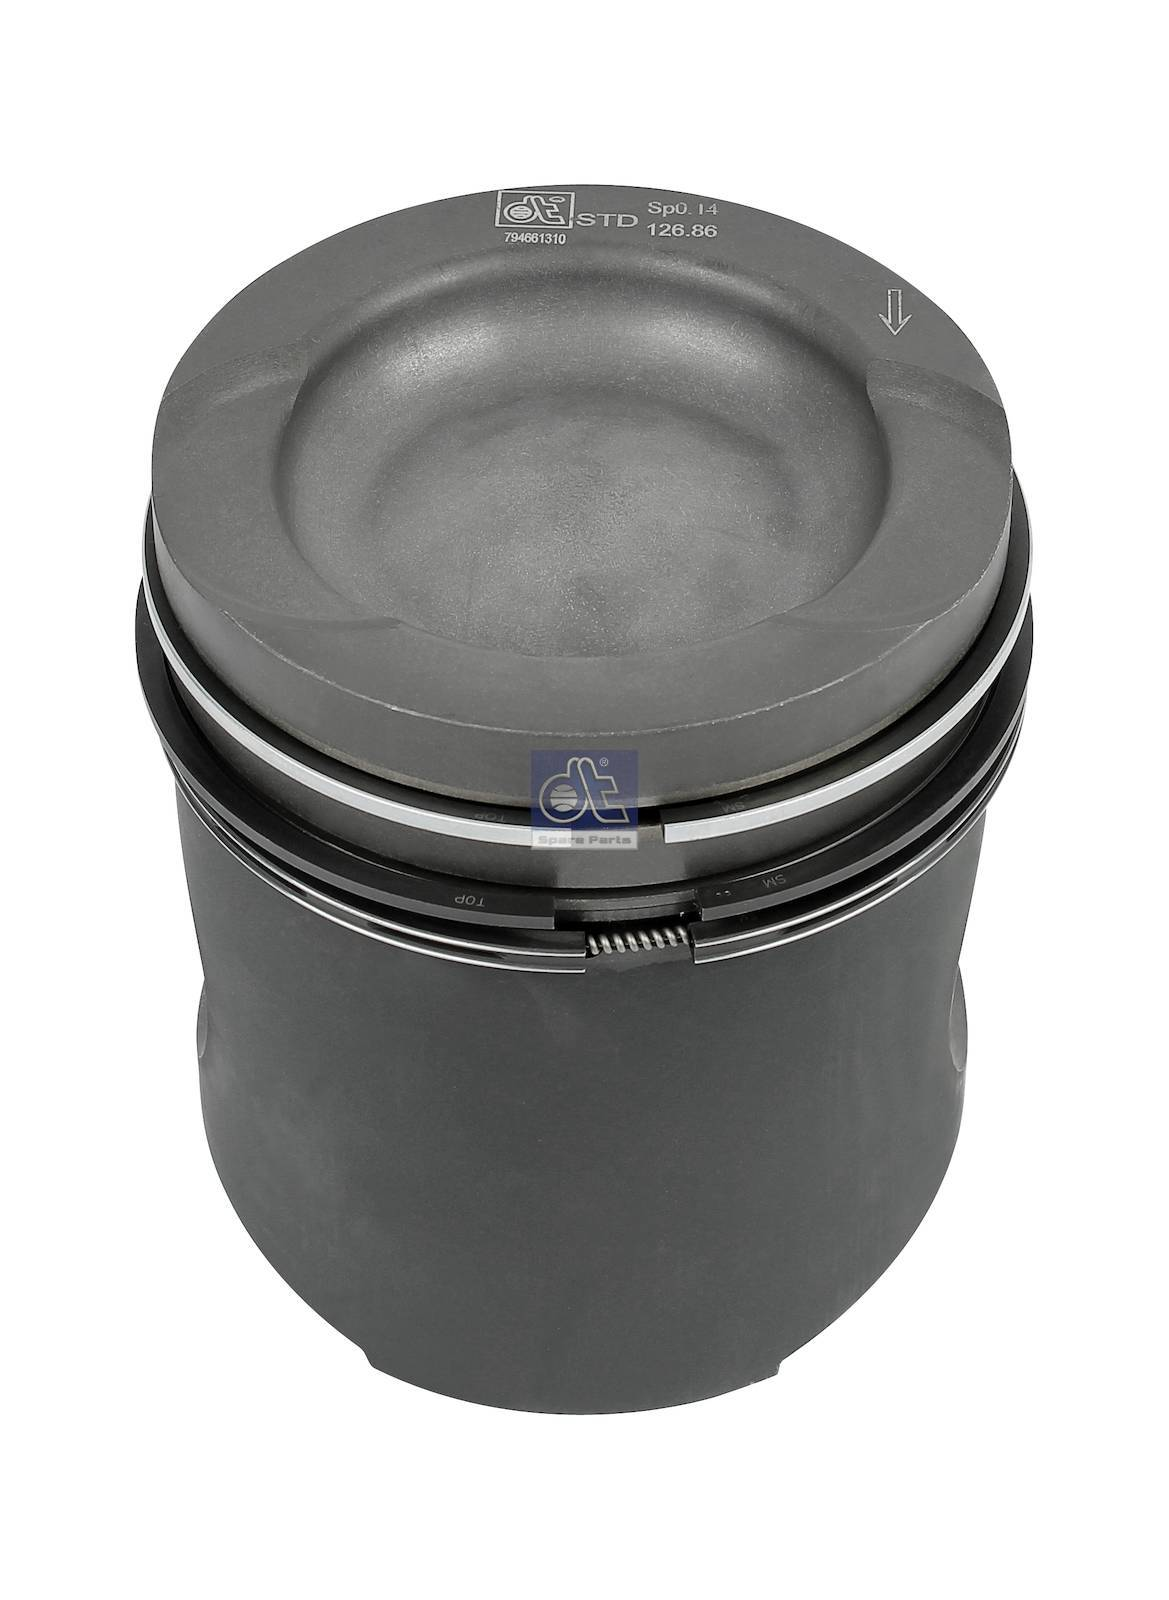 Piston, complete with rings